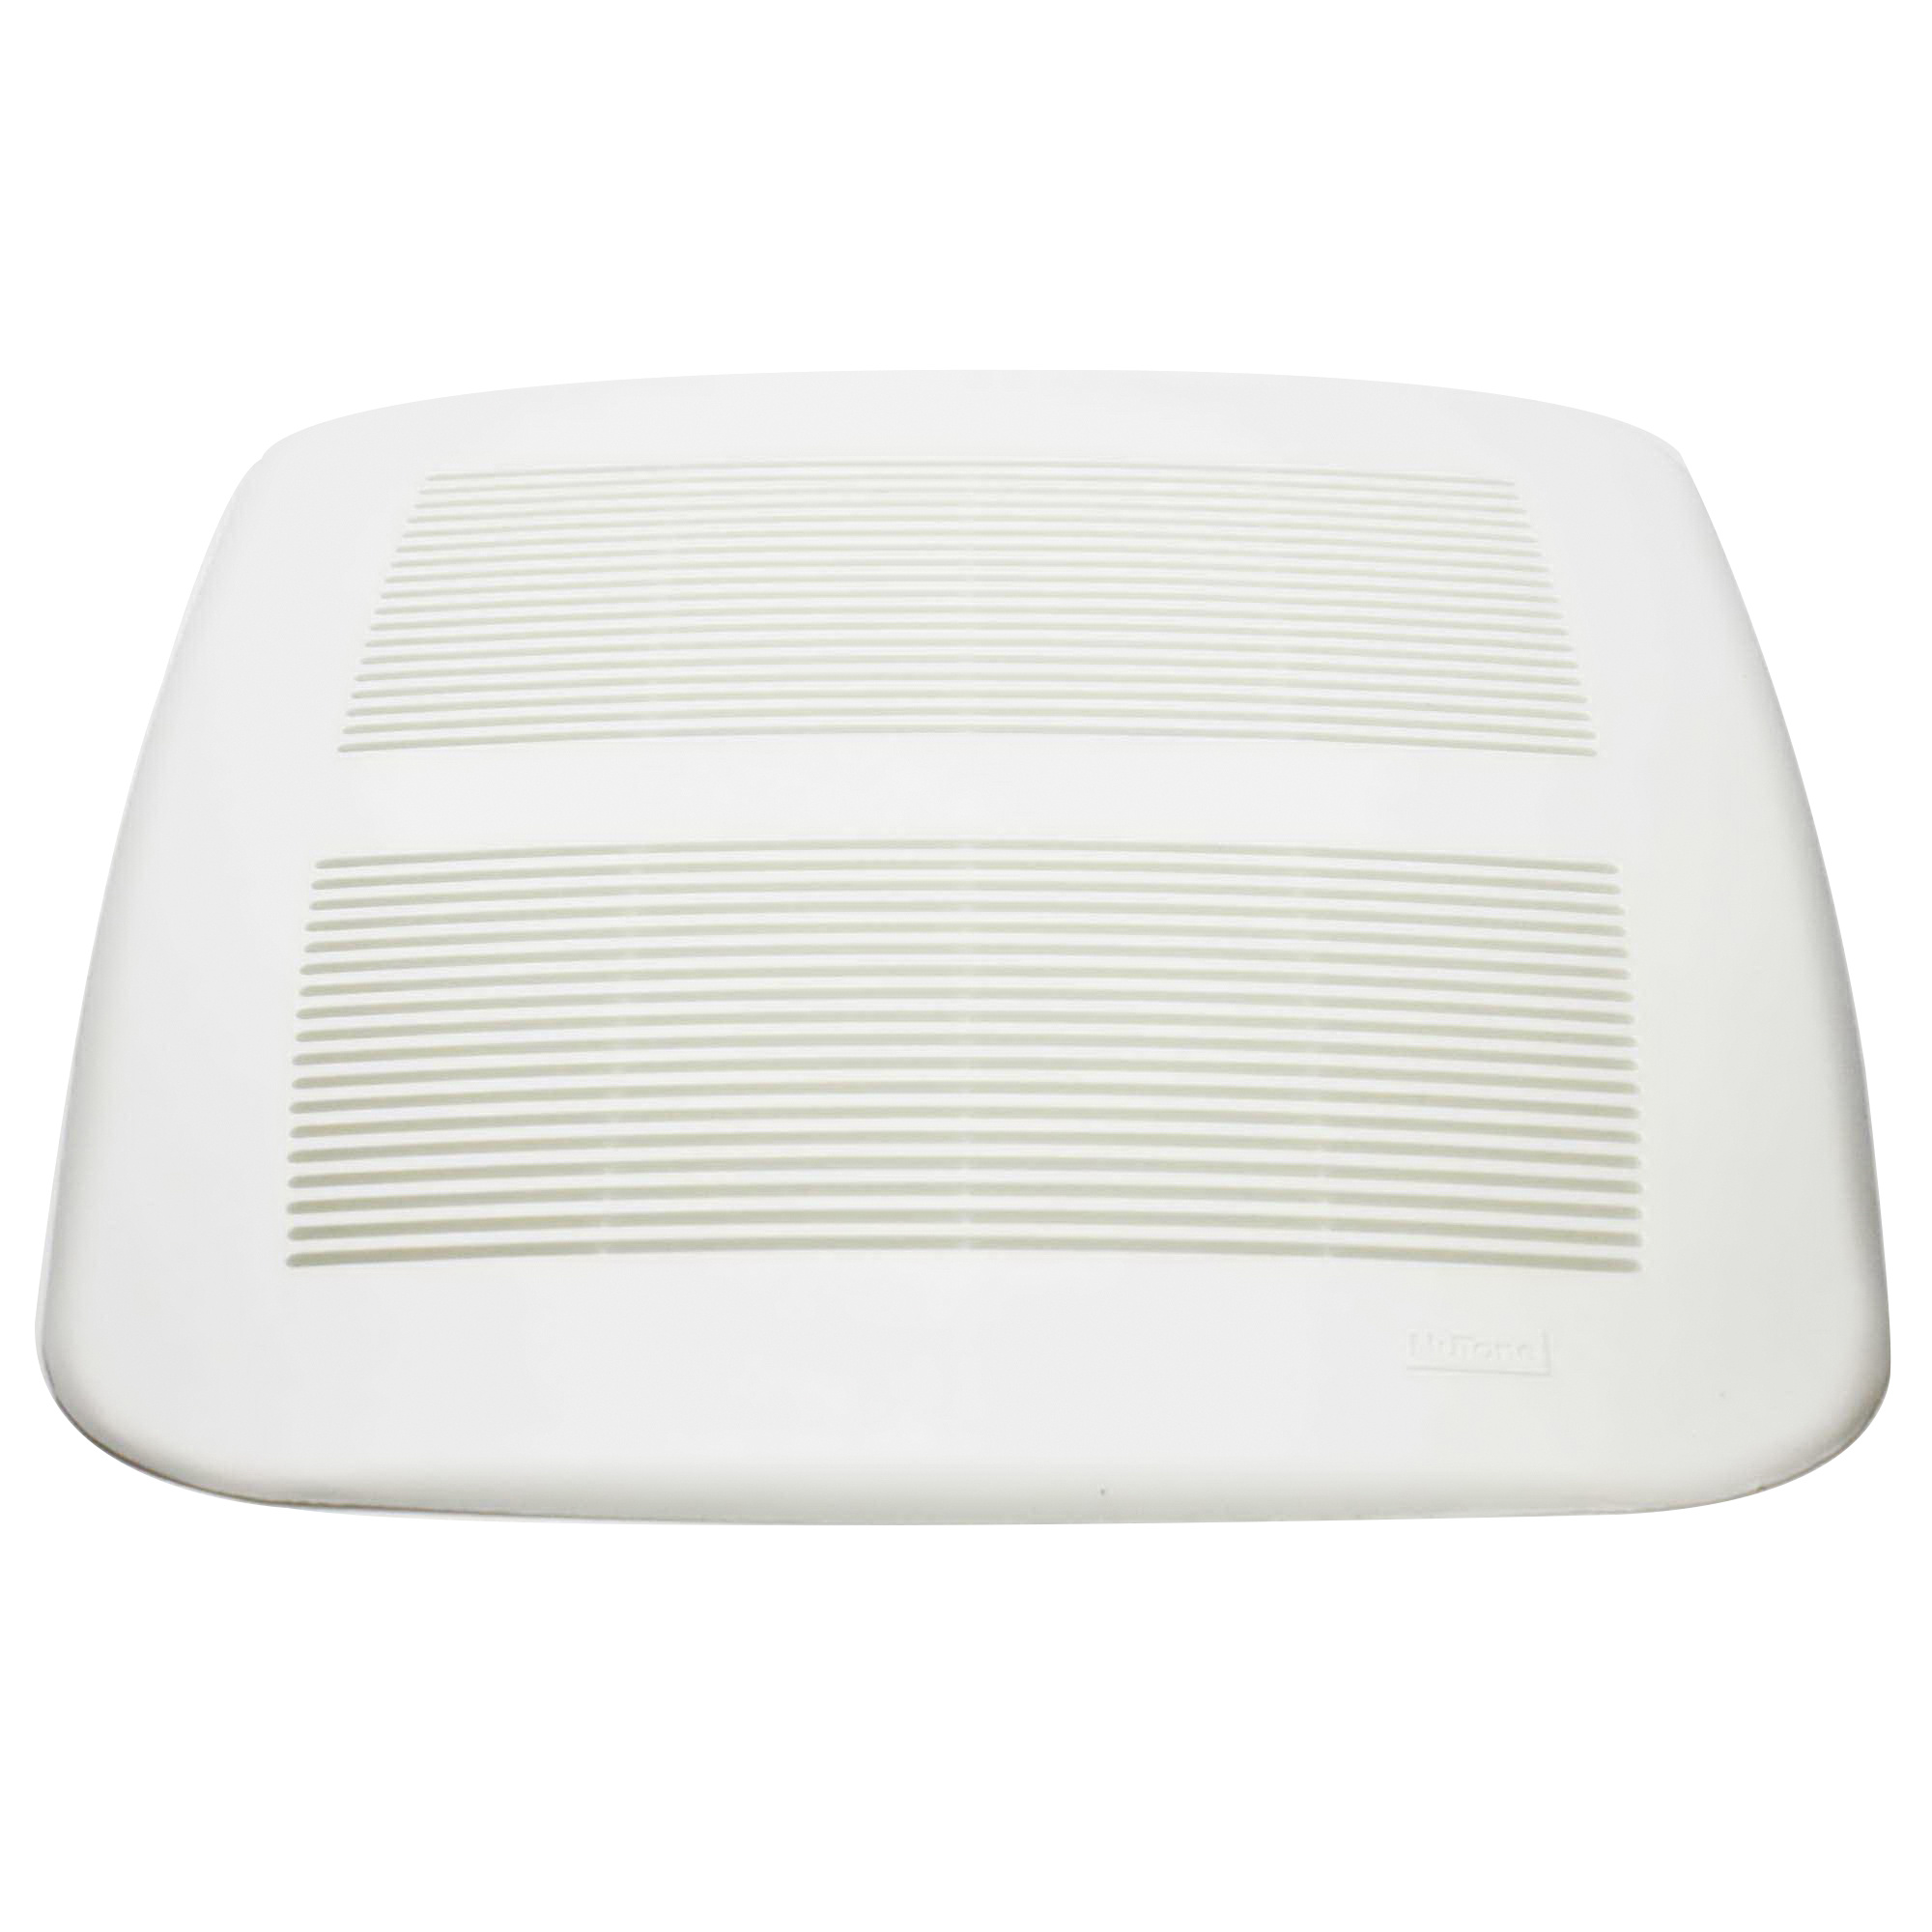 Nutone S84607000 Bathroom Vent Grille 14-Inch x 12-Inch ...